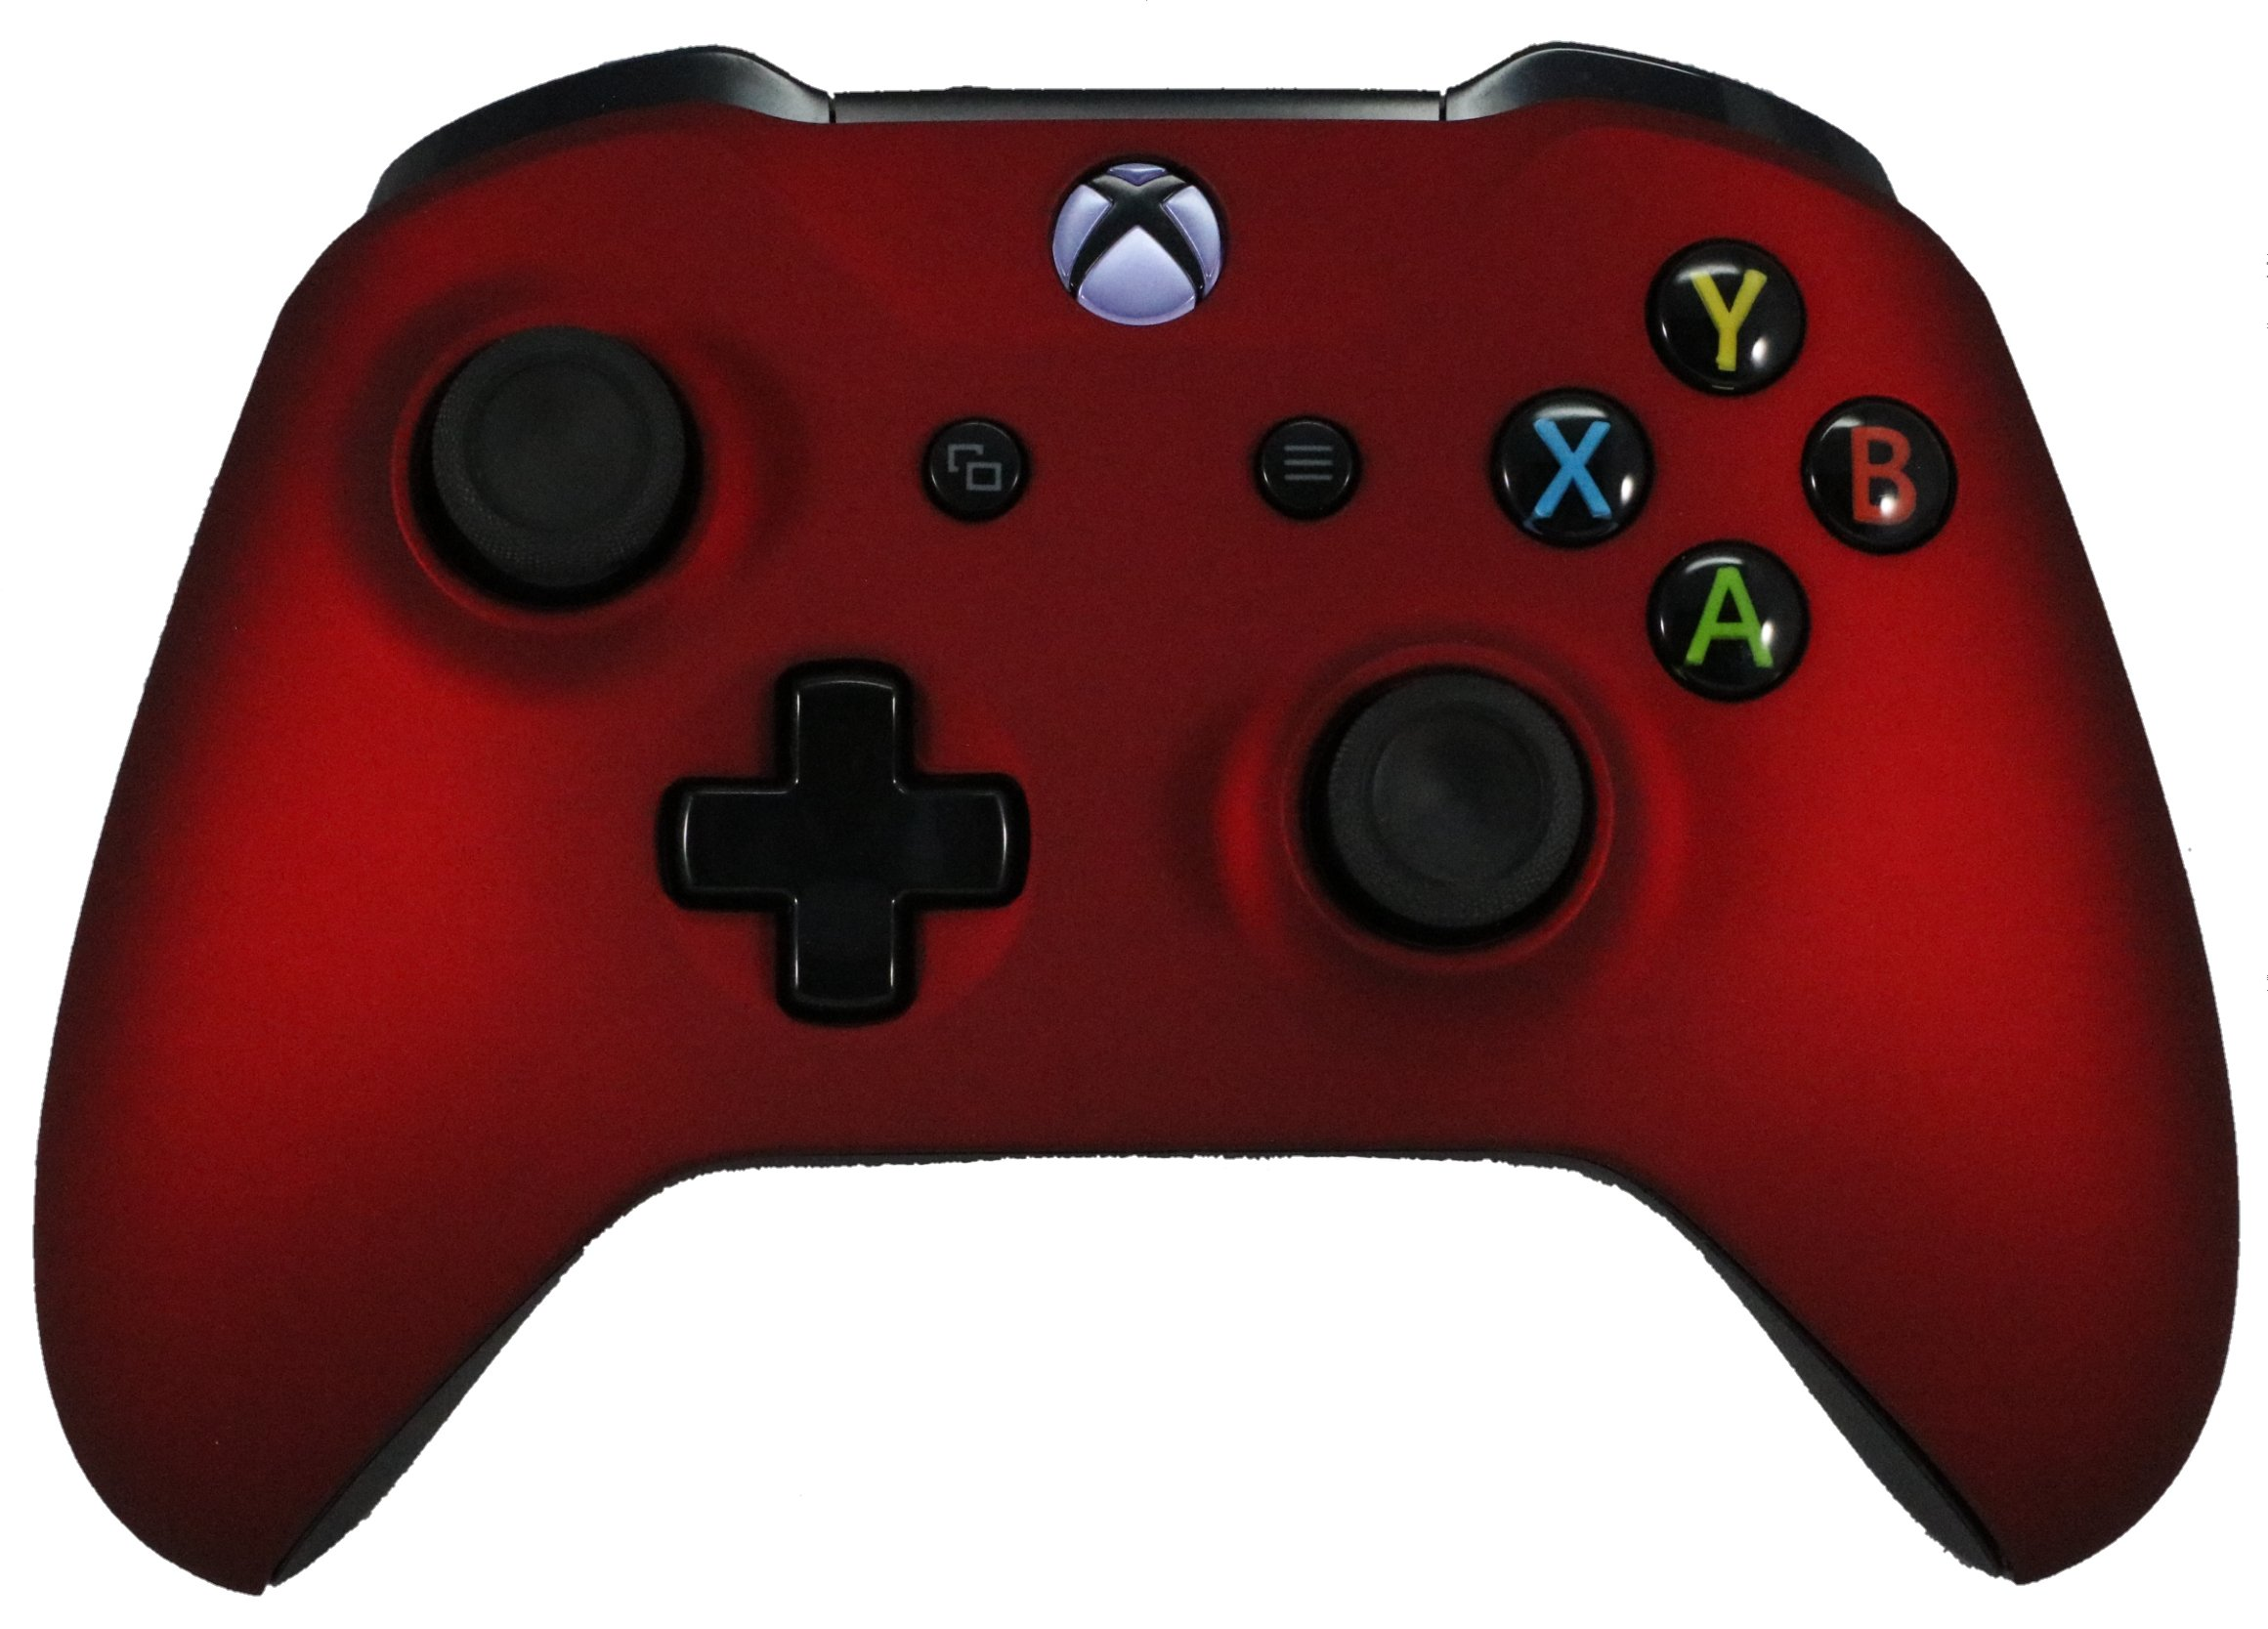 Xbox One Red Modded Rapid Fire Controller / Sniper Quick Scope / Drop Shot / Quick Aim / Zombies Auto Aim / Mimic / Burst / For Call of Duty / Modern Warfare / Black Ops / All Games / Soft Touch by Premium Controllerz (Image #1)